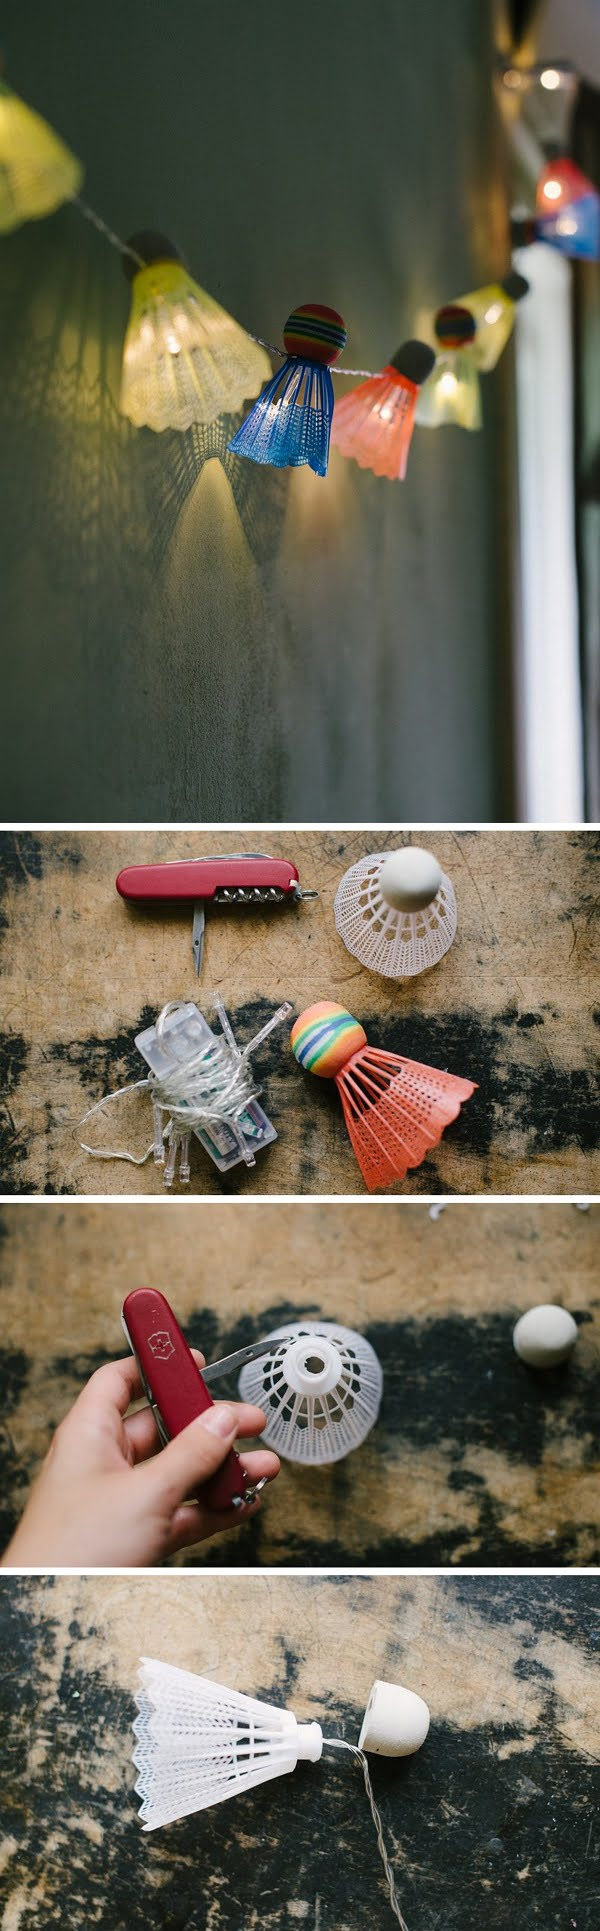 Check out this easy idea on how to make #DIY outdoor shuttlecock lights #homedecor #project #budget #crafts